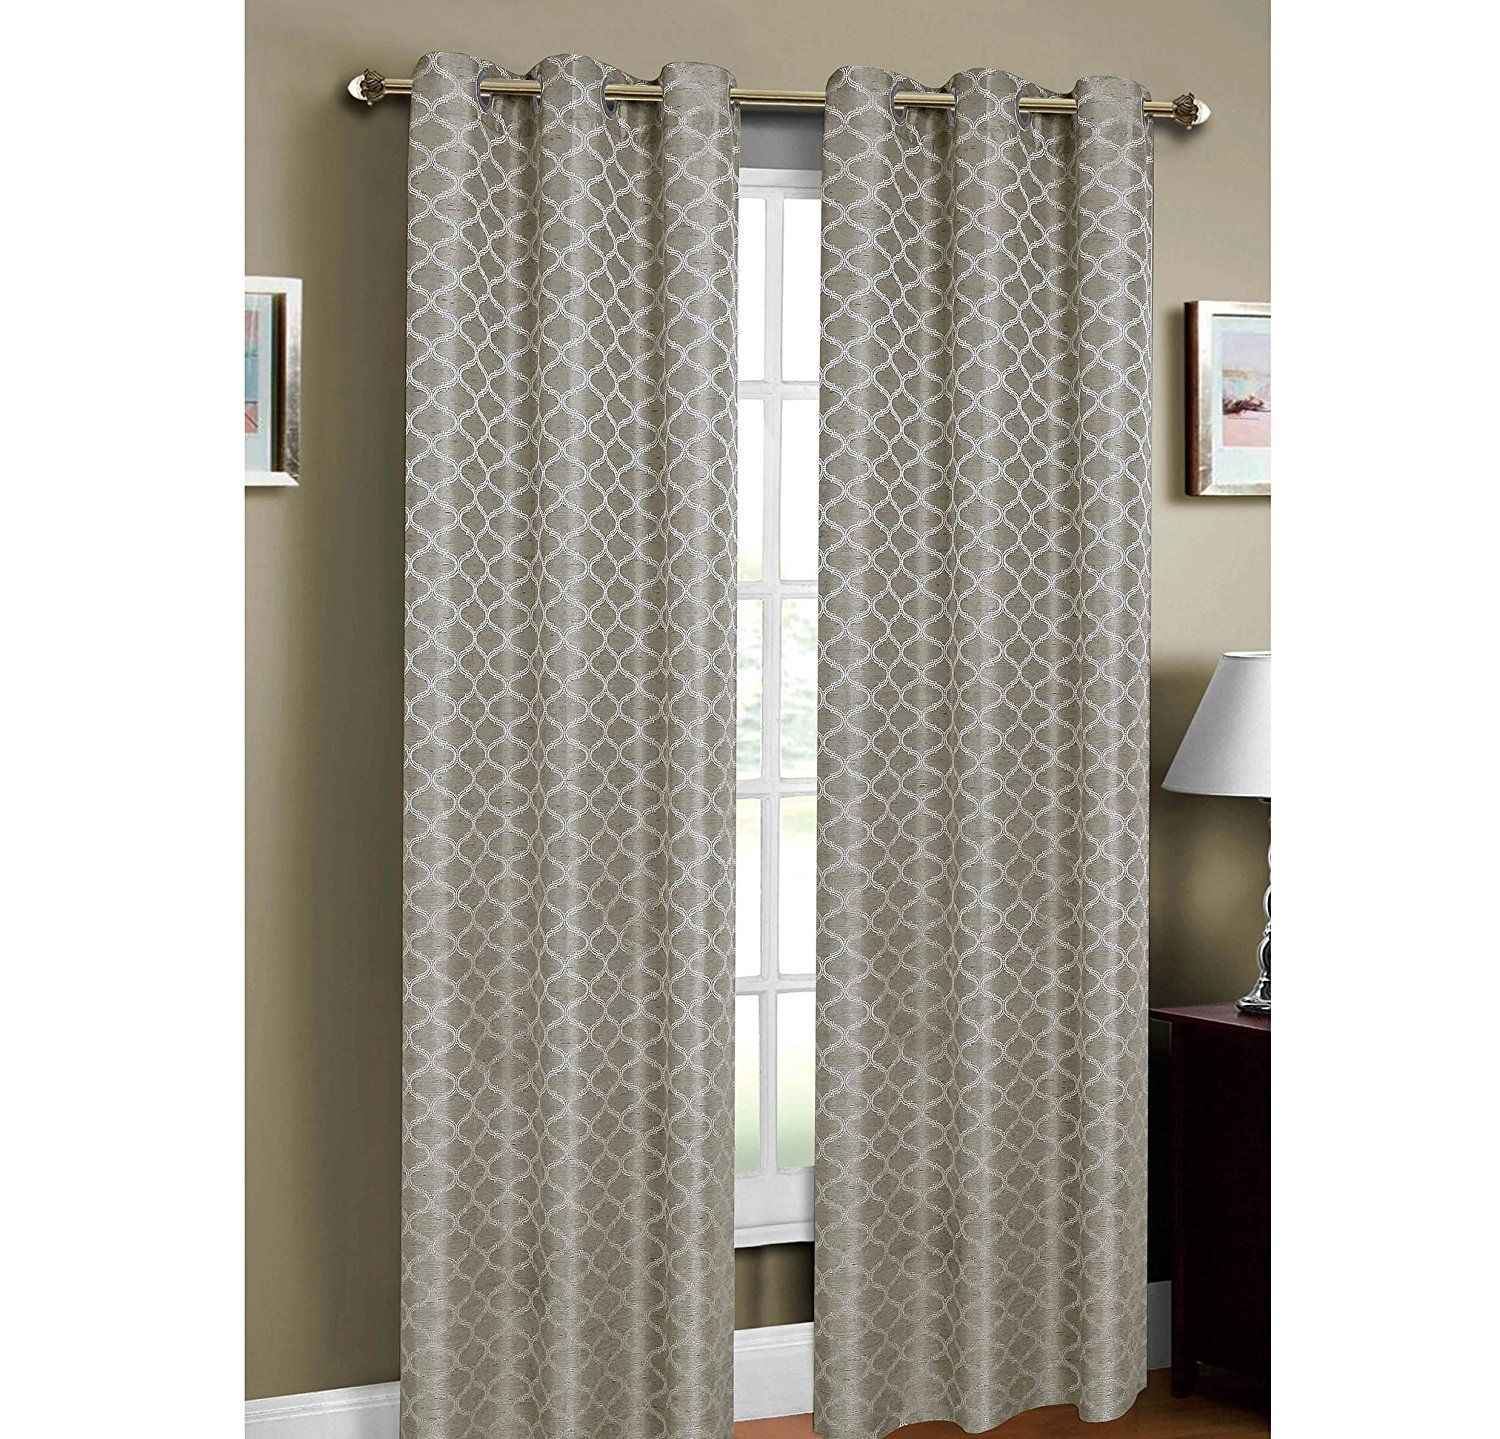 curtainsteal yellow patterns patterned concept window impressive white like teal to mix pro how image elegant pattern room curtain full size sheer of for trellis curtains voile living